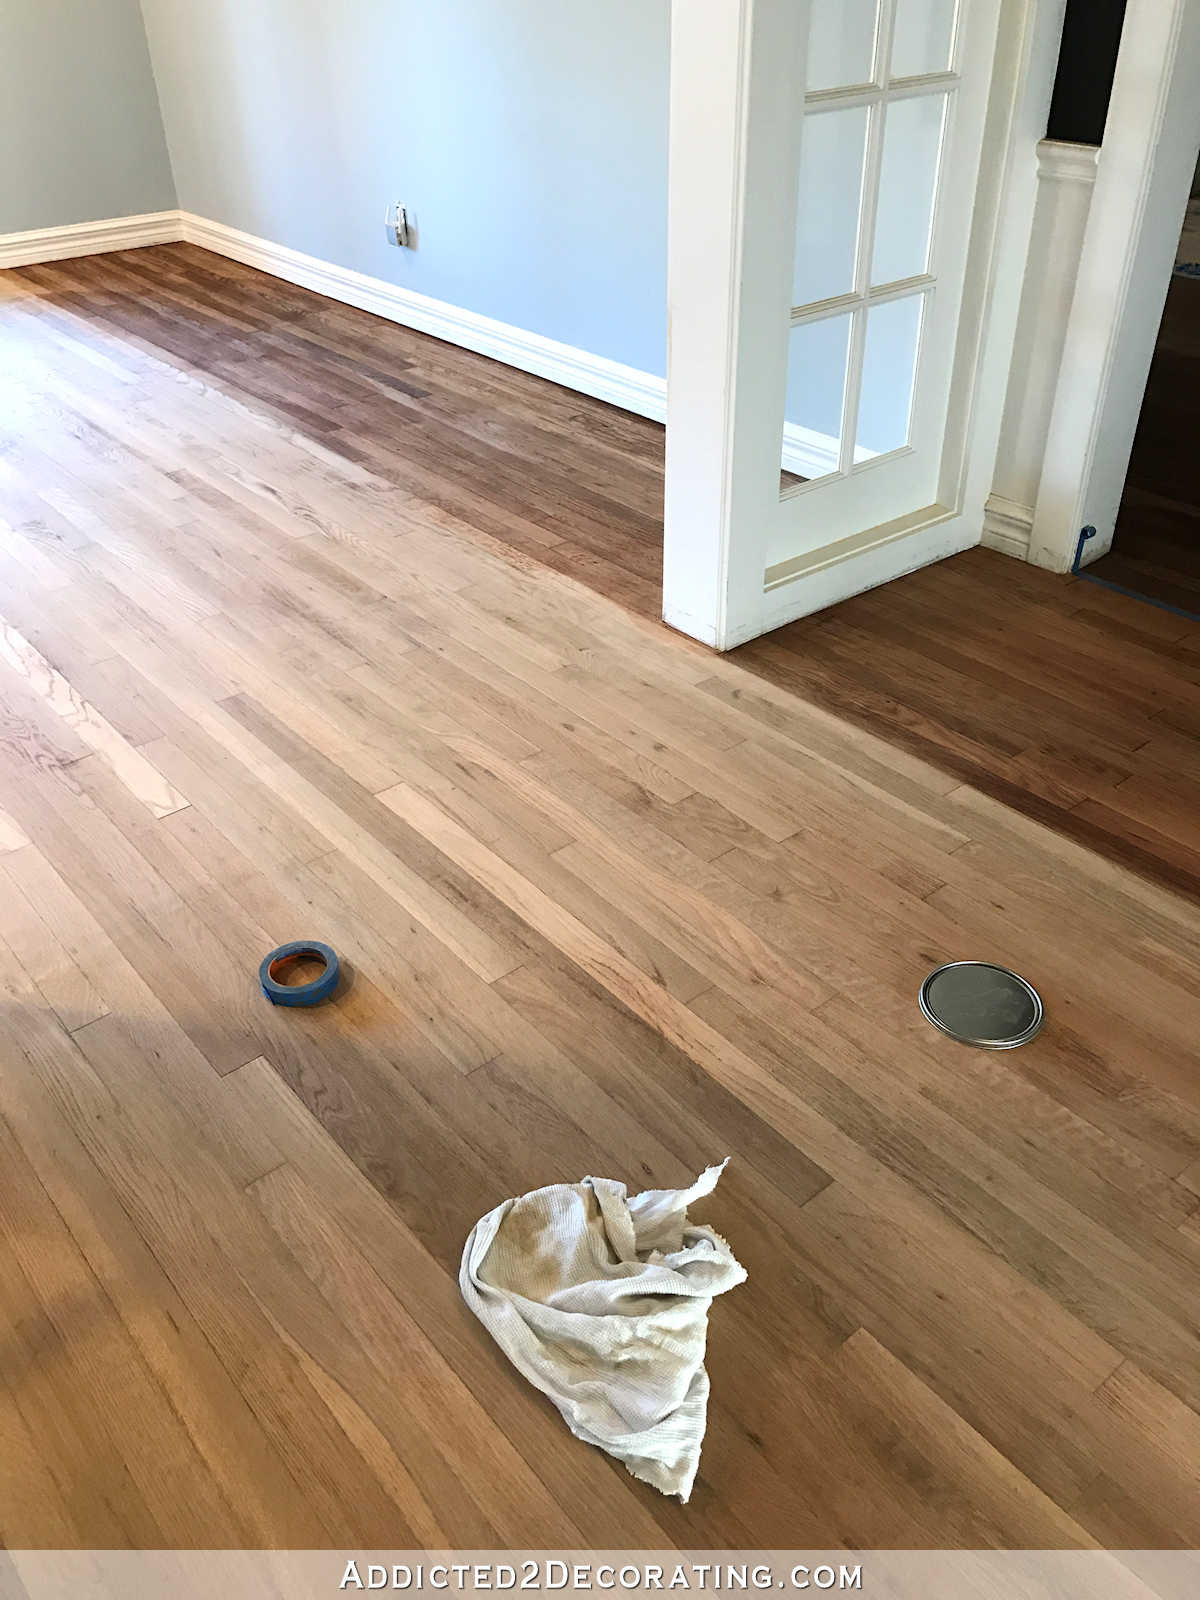 popular hardwood floor colors 2017 of adventures in staining my red oak hardwood floors products process throughout staining red oak hardwood floors 3 entryway and music room